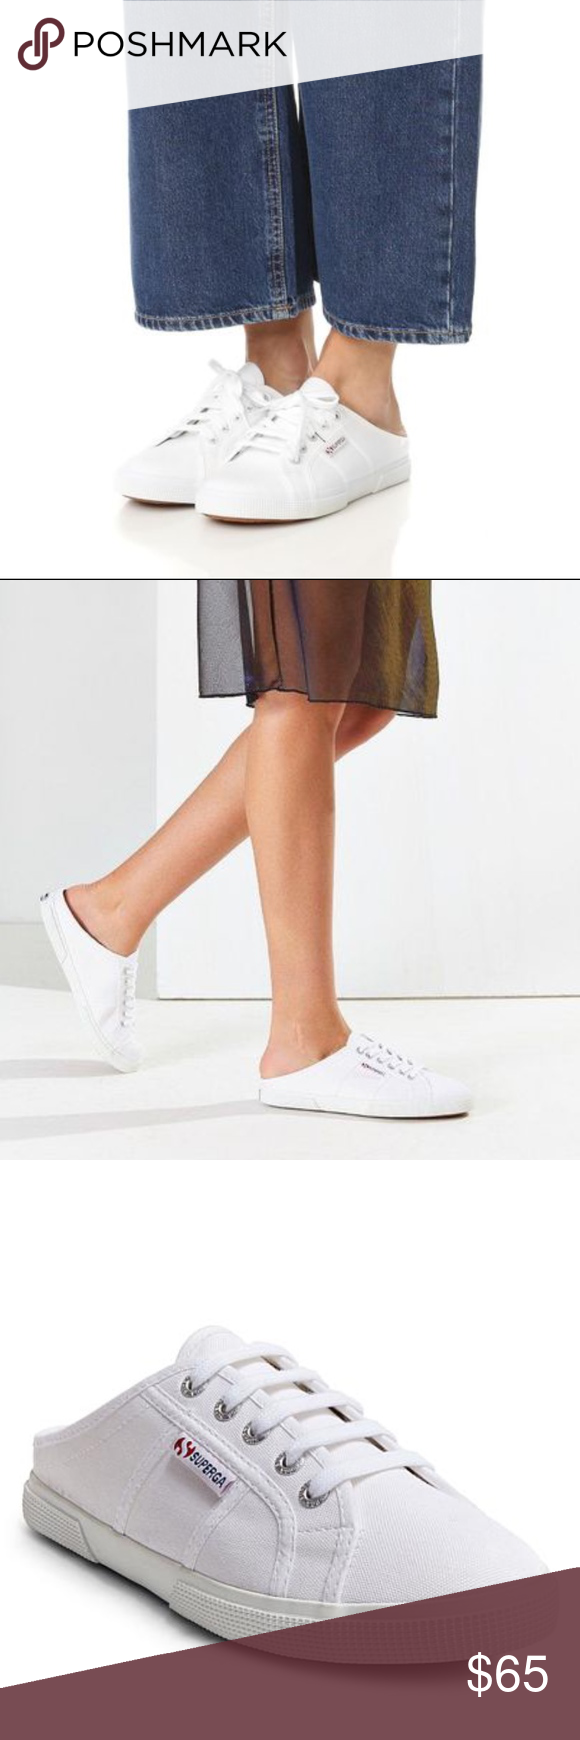 SUPERGA Mule Sneakers NWT! In White